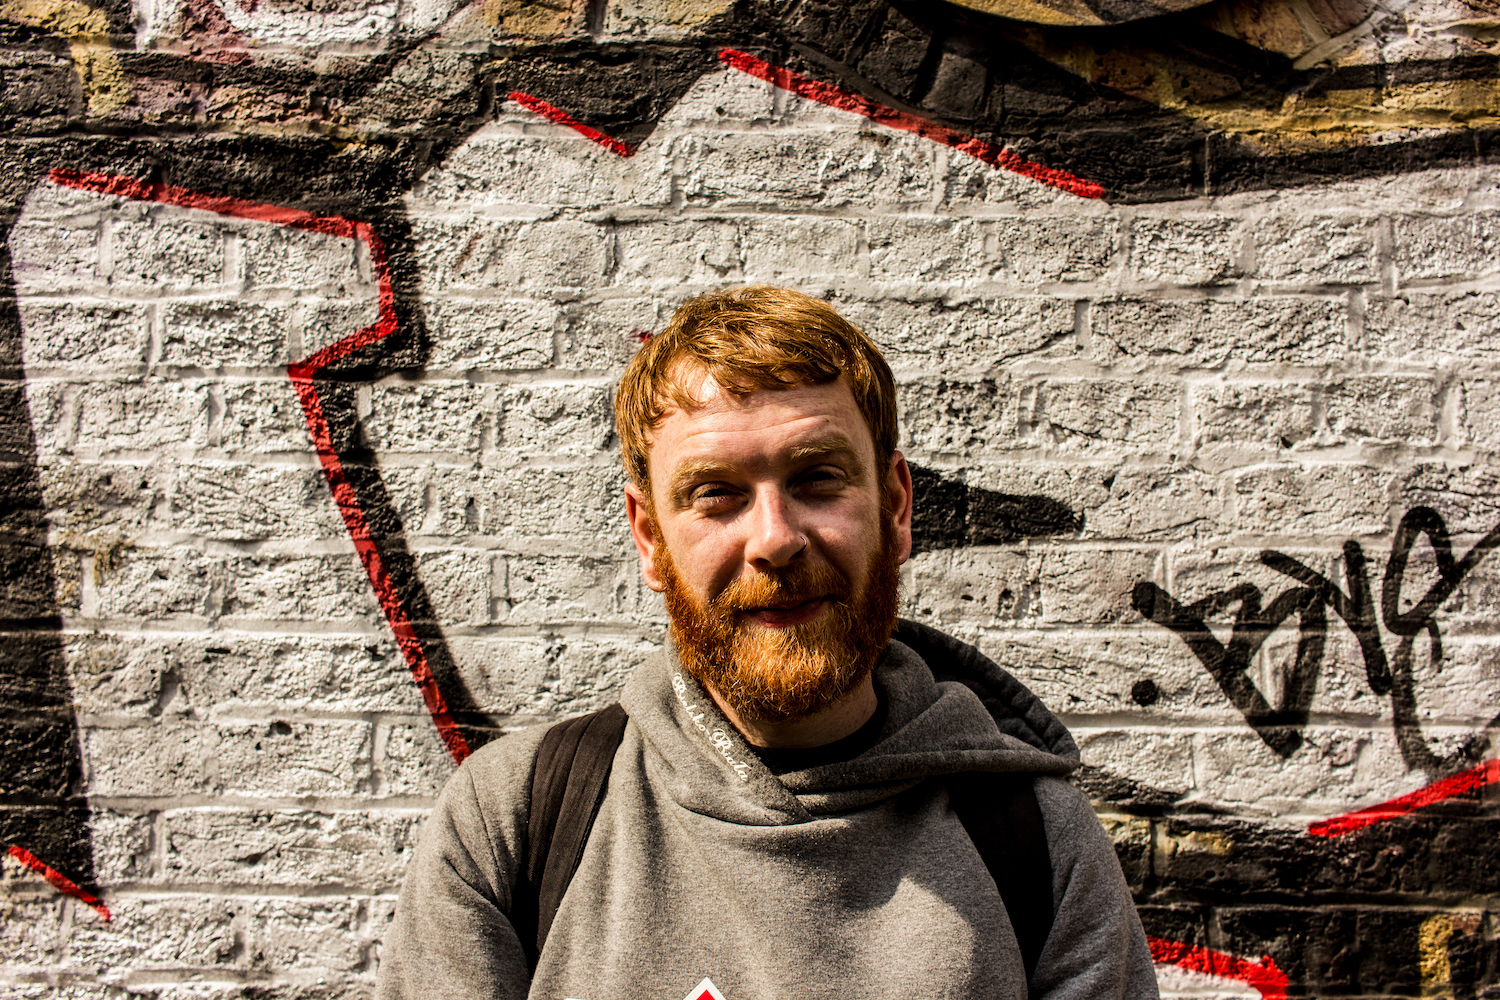 Professional Photography White Man With Beard Grey Hoody And Black Backpack Standing In front of Graffiti Wall